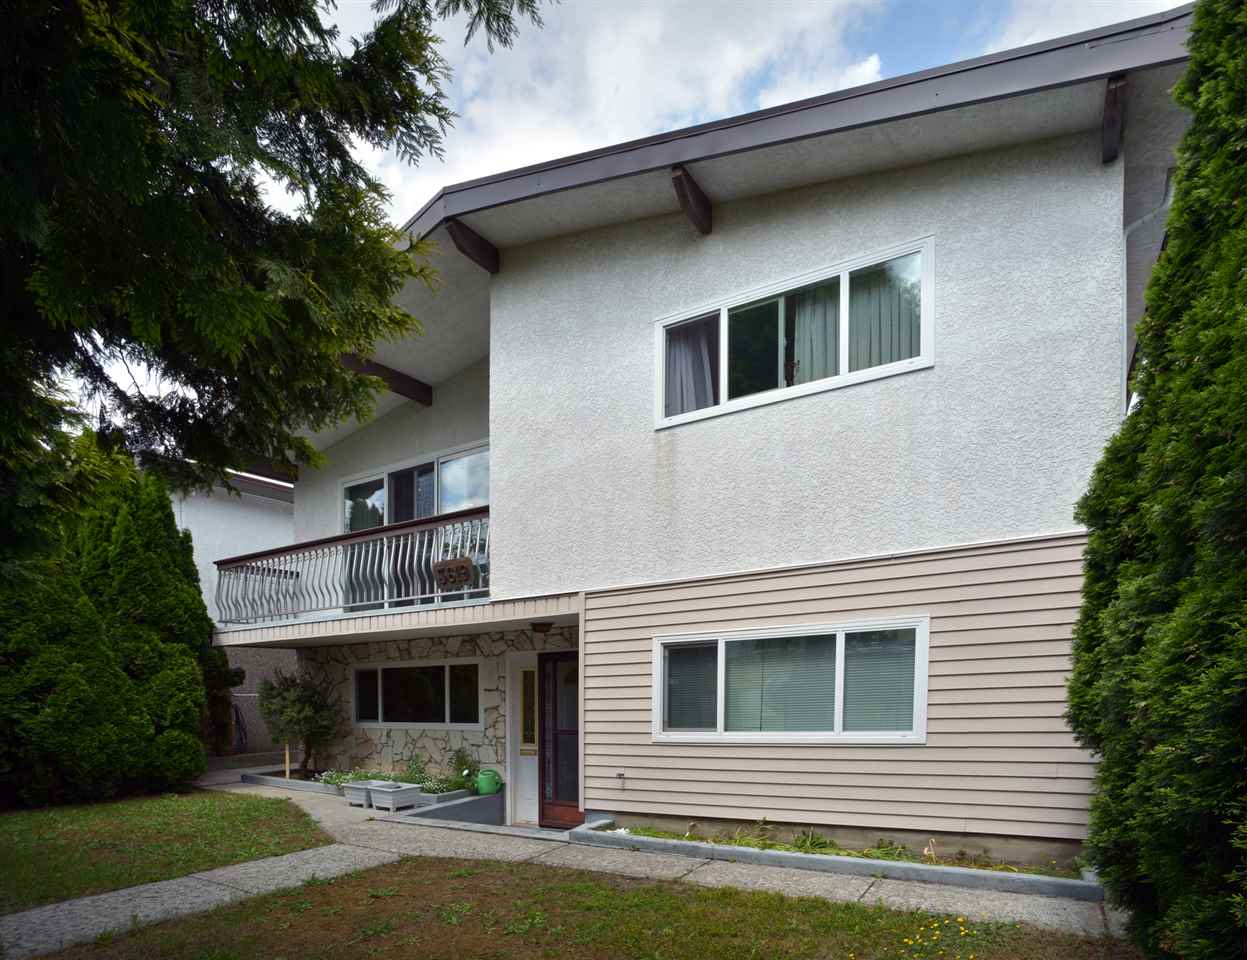 Main Photo: 3619 MOSCROP Street in Vancouver: Collingwood VE House for sale (Vancouver East)  : MLS®# R2073239